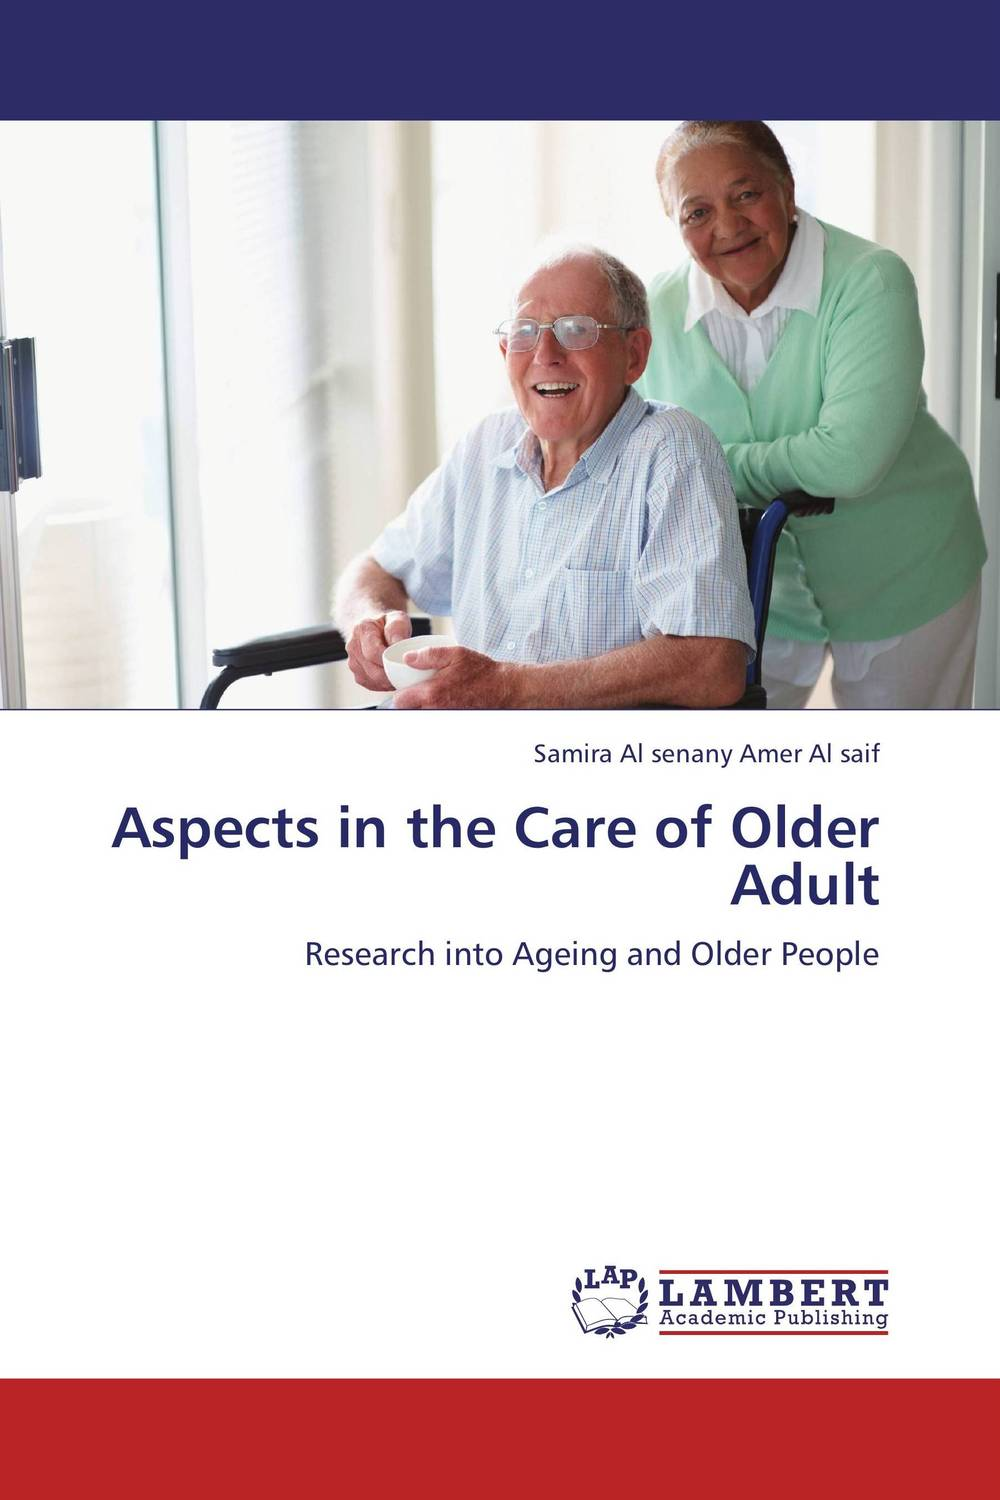 Aspects in the Care of Older Adult marco zolow spirituality in health and wellness practices of older adults